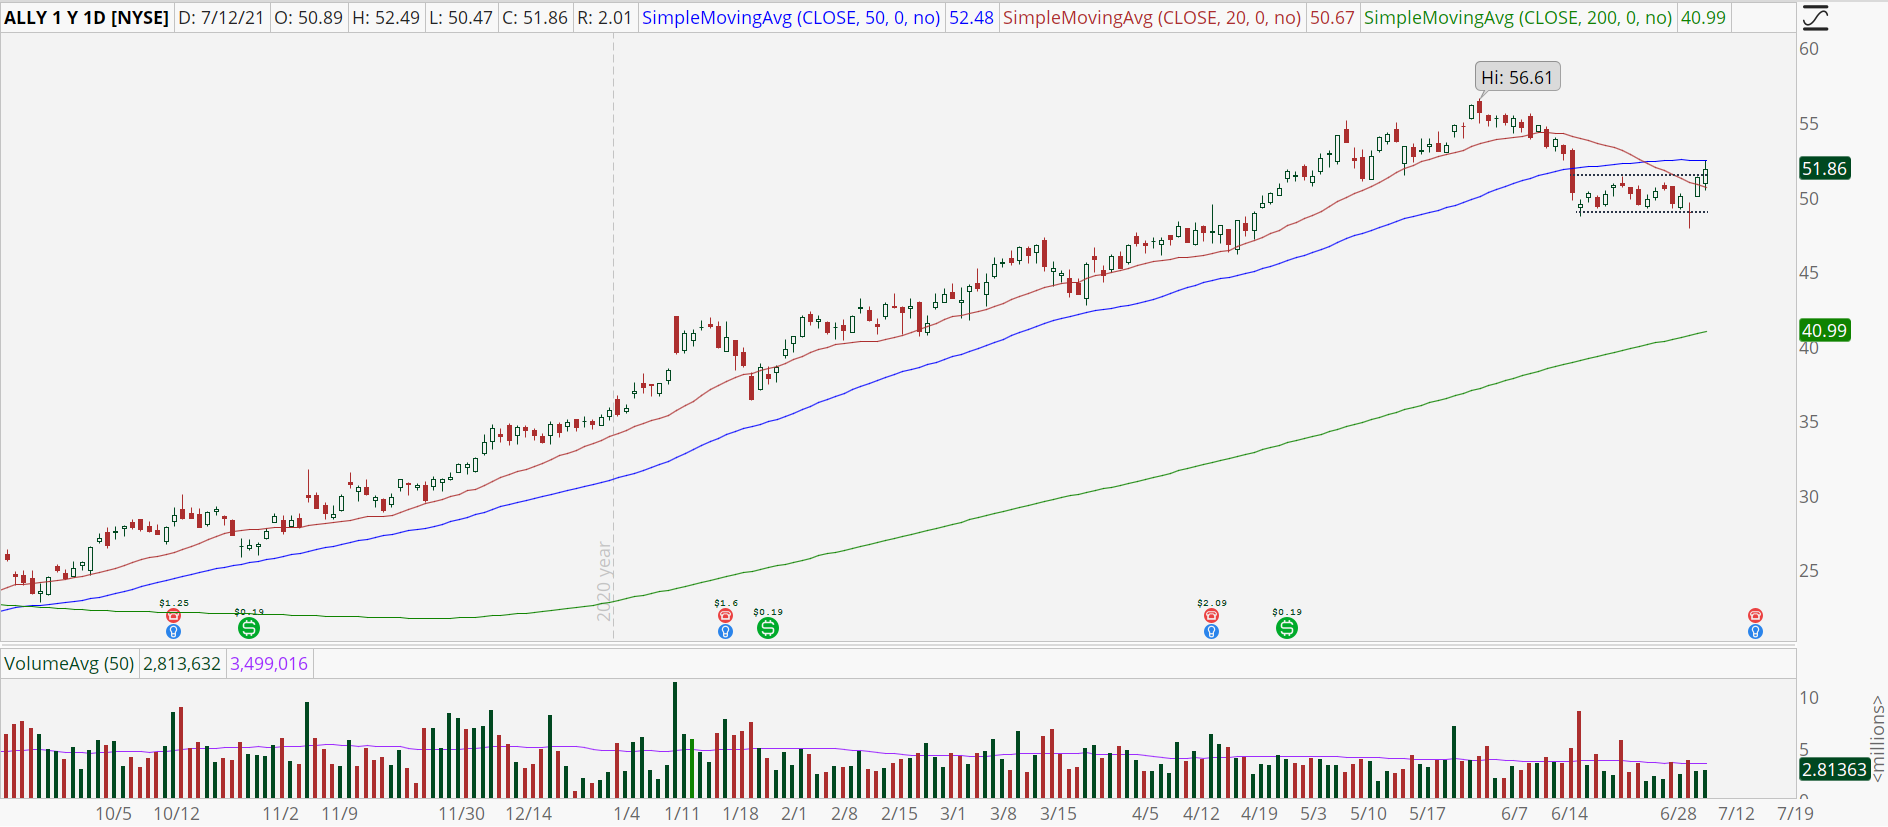 Ally Financial (ALLY) stock chart with bullish breakout.